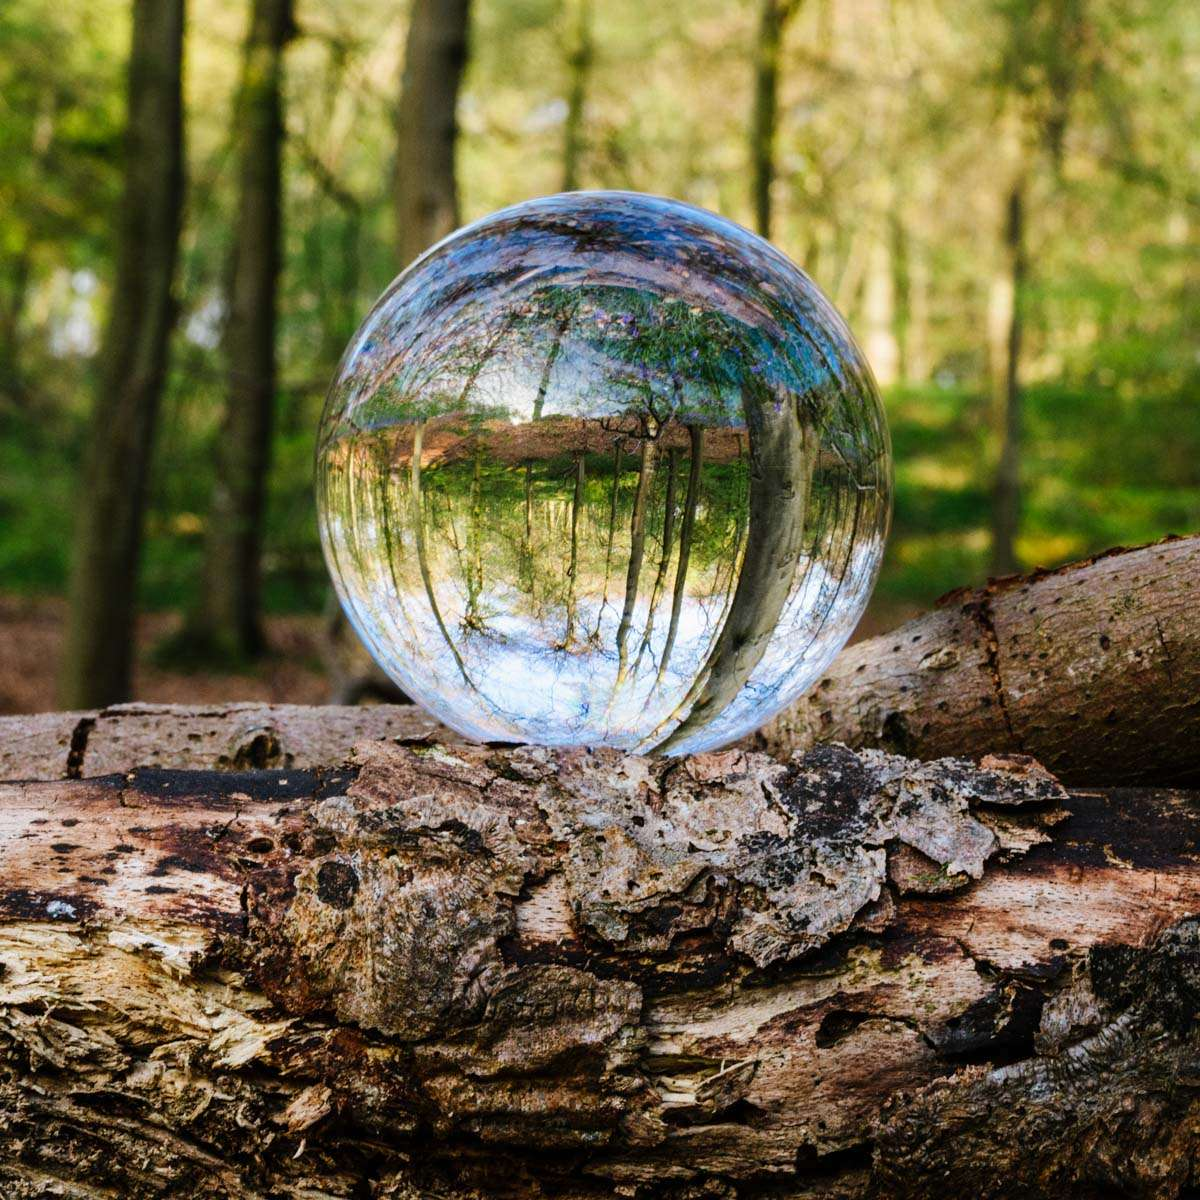 lensball photography in the South Oxfordshire woodland